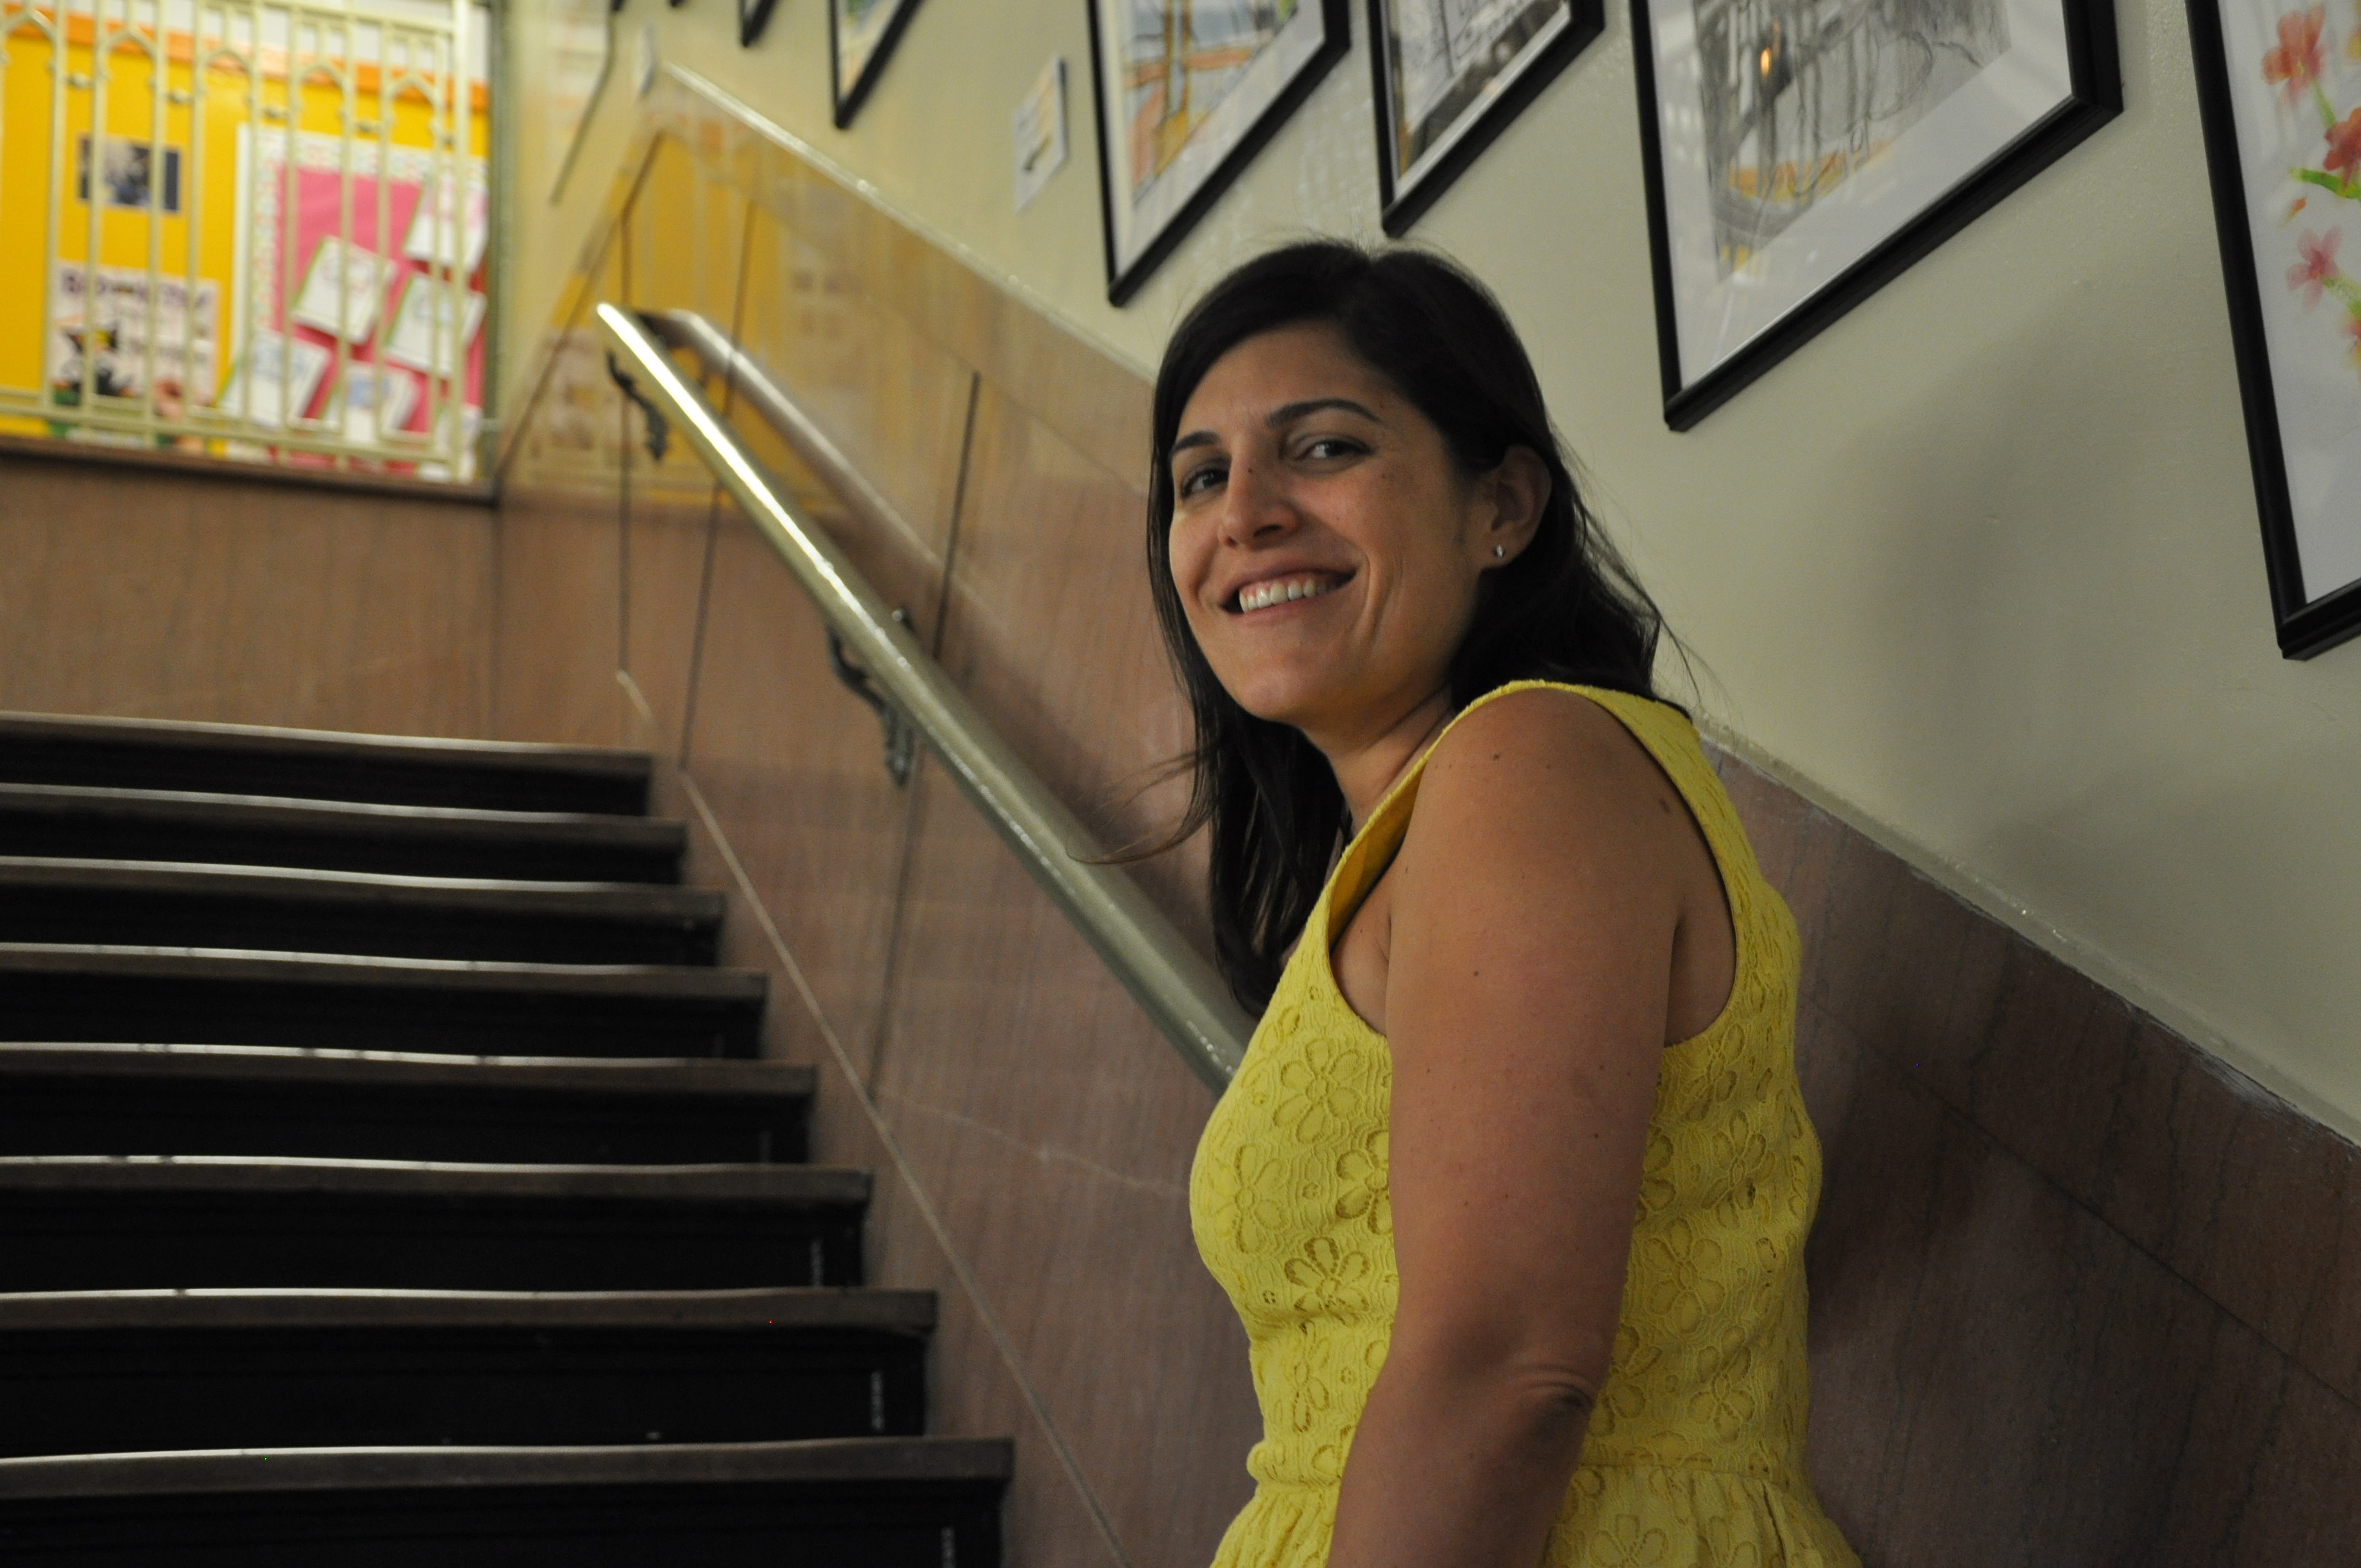 Founding principal leaves behind vision for Girls Prep